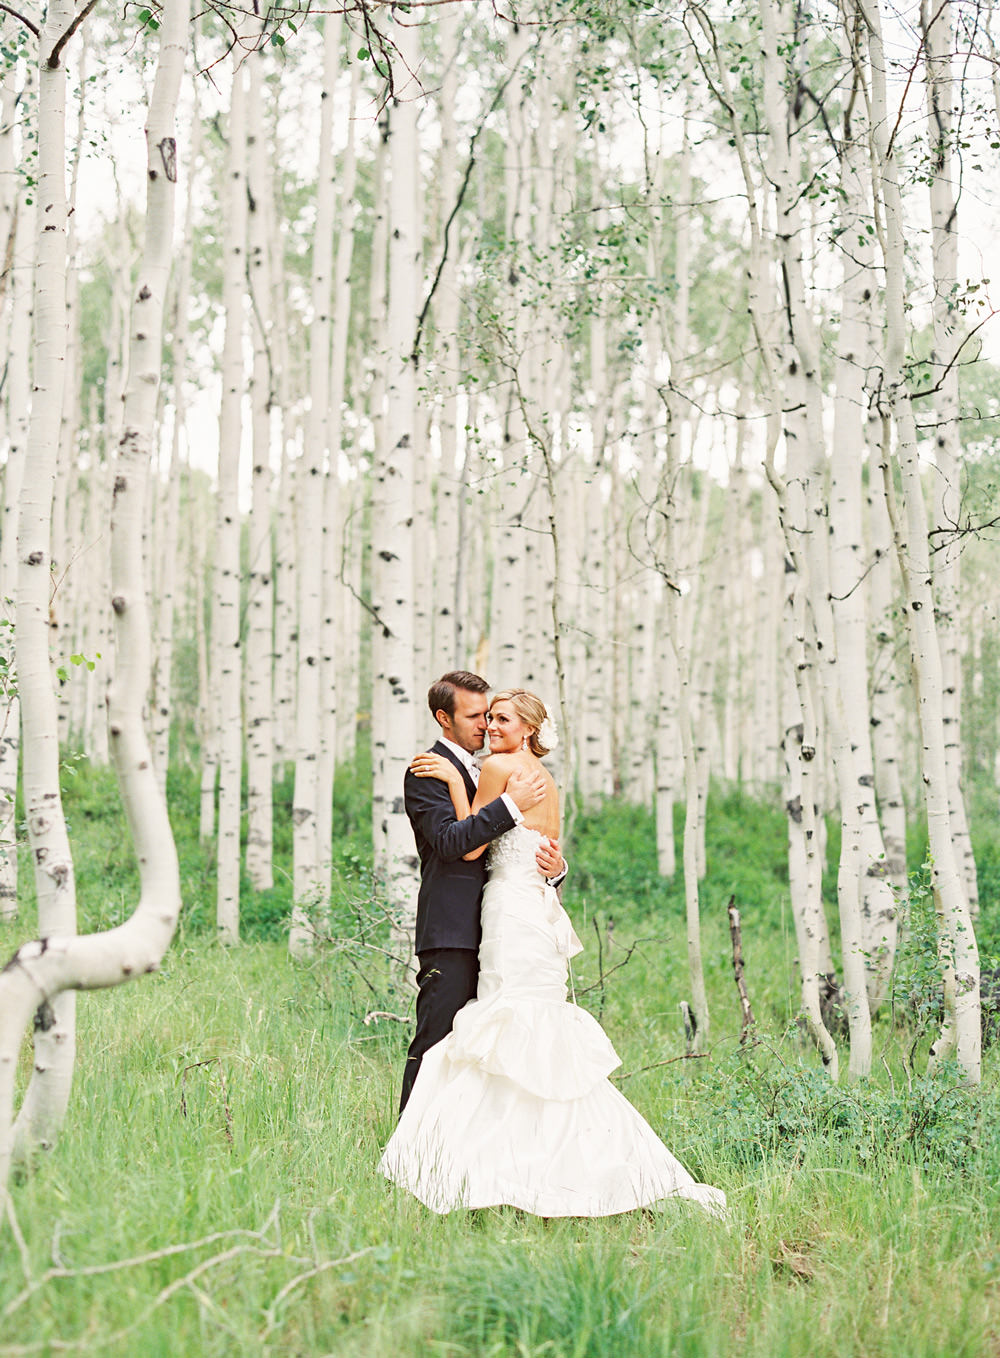 caitlin lindquist of dash of darling shares her wedding at the st. regis deer valley in deer crest, park city utah